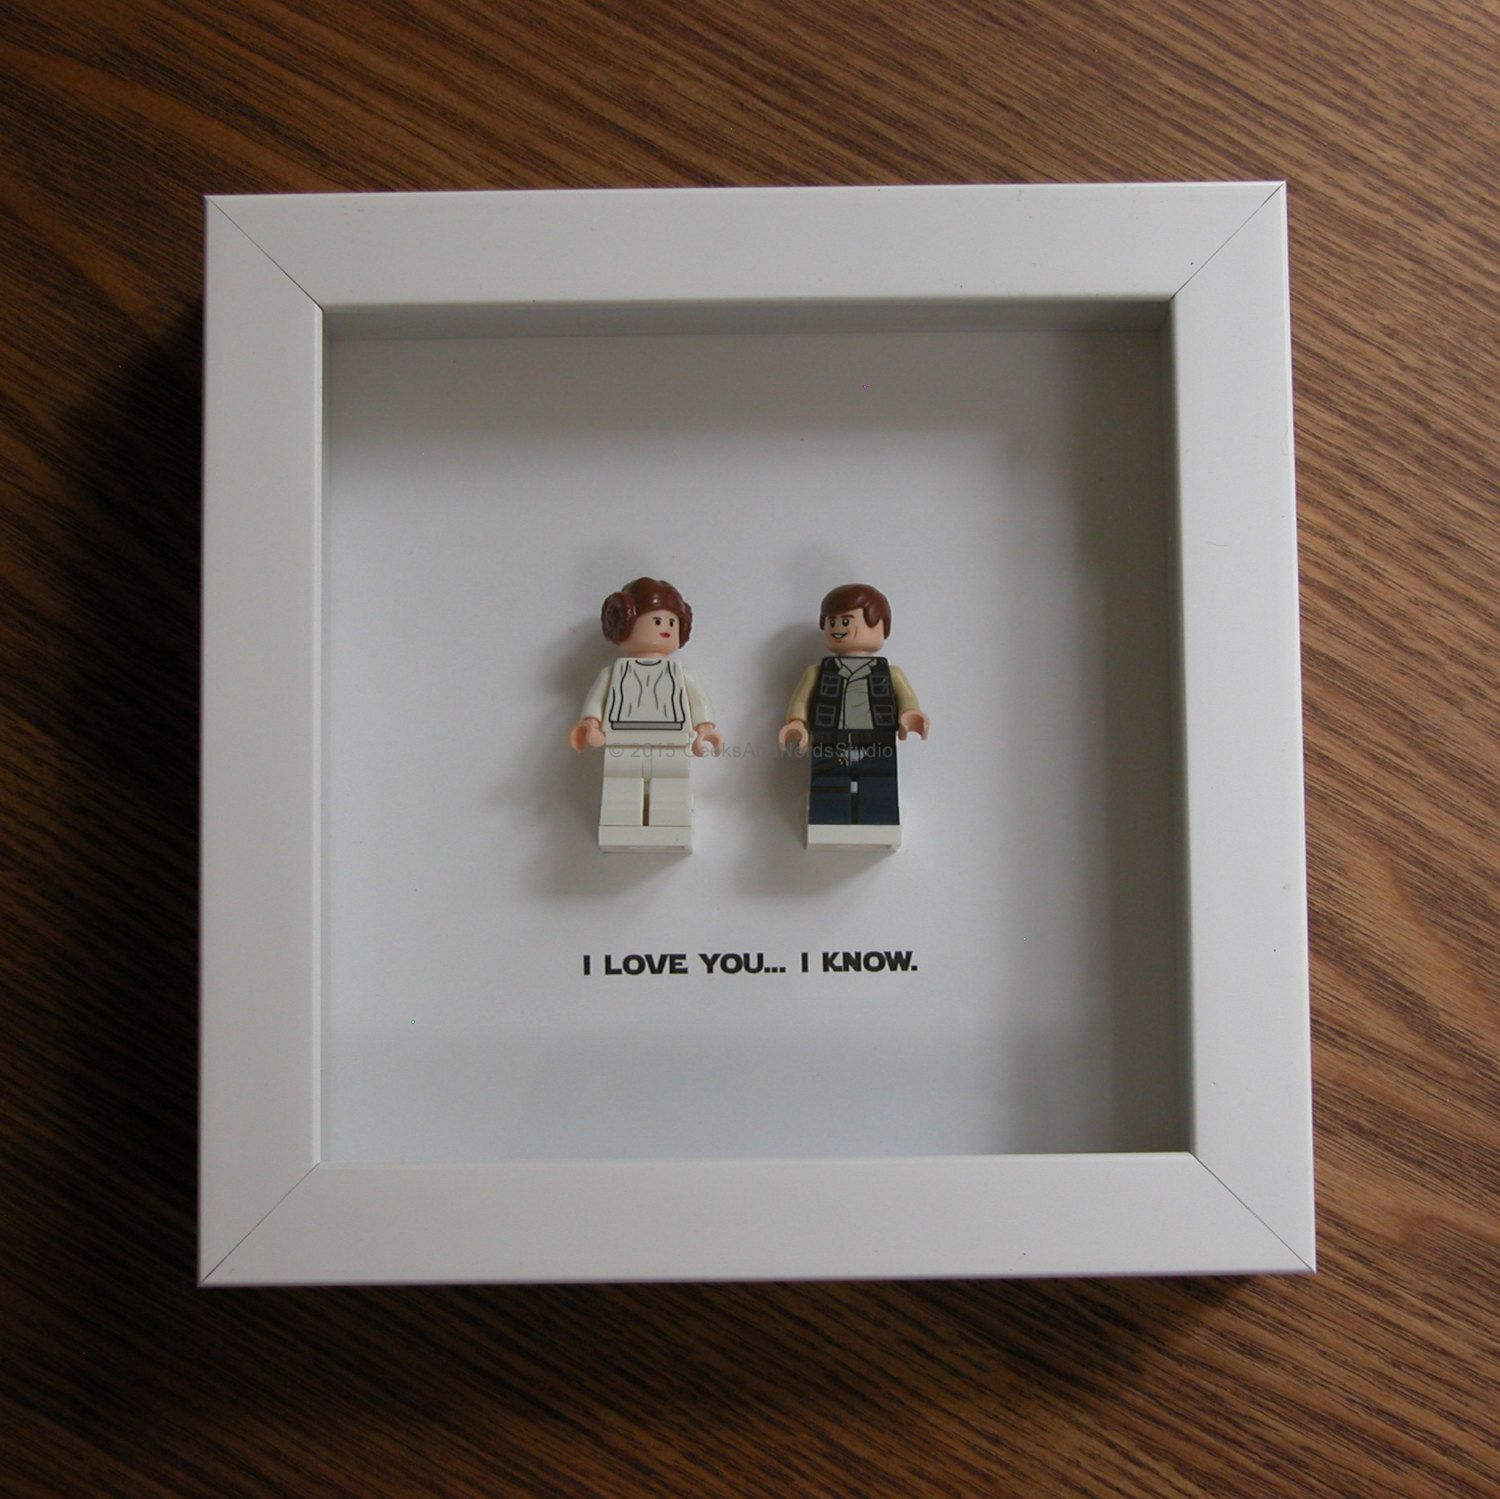 Lego Frame Art Han Solo Princess Leia Star War Wedding